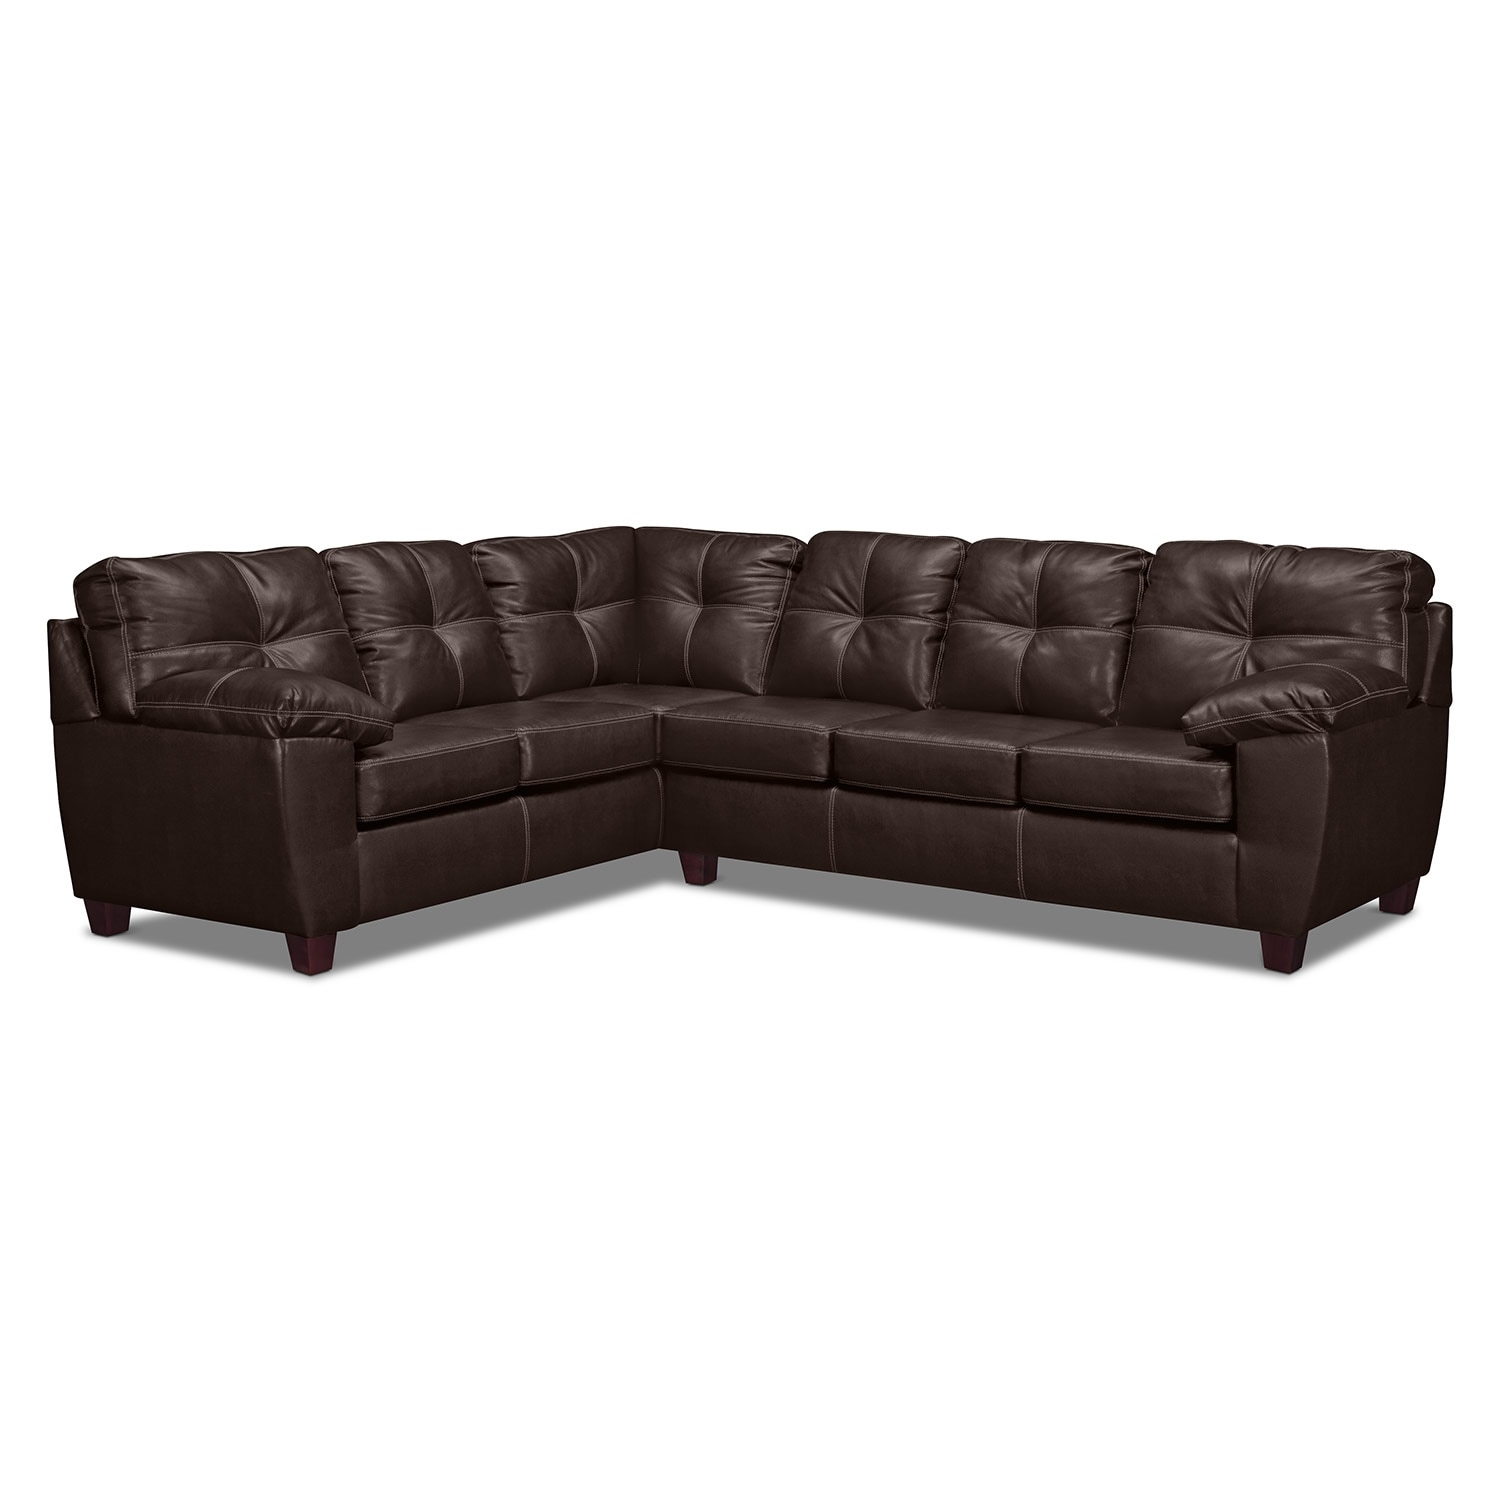 Ricardo 2 Piece Innerspring Sleeper Sectional With Left Facing Sofa Brown Value City